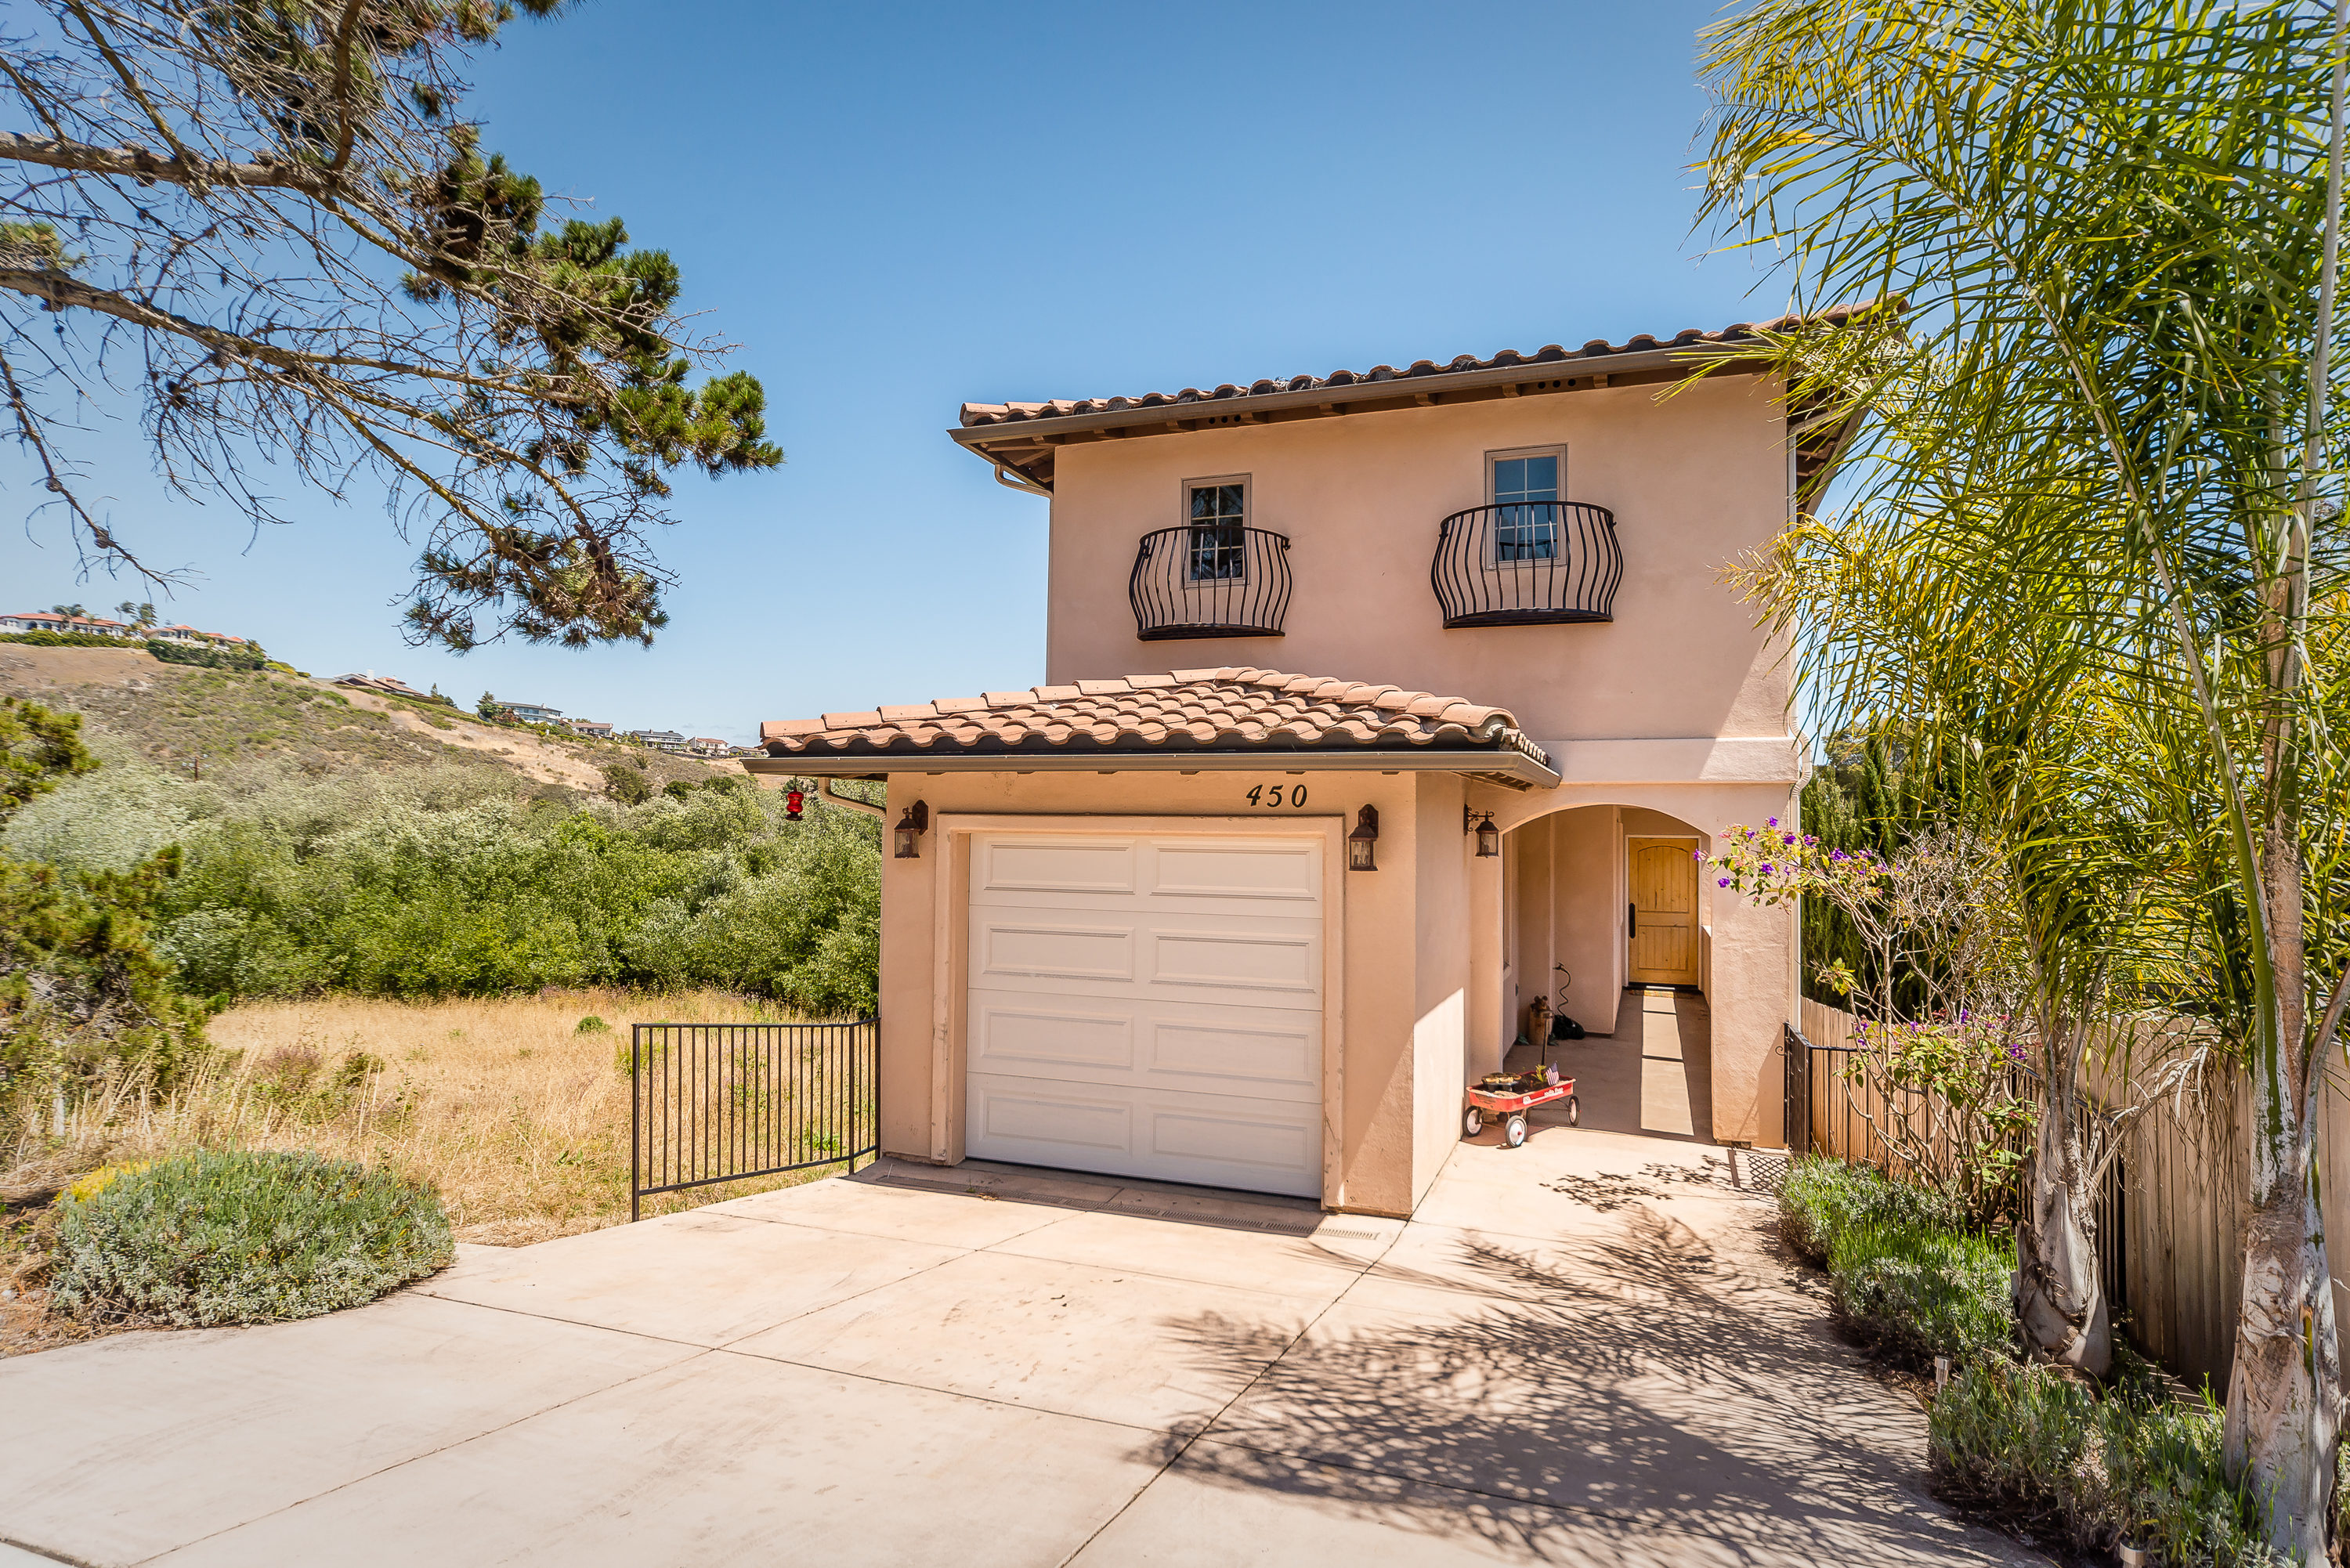 Single Family Home for Sale at 4 Blocks to the Beach! 450 Ocean View Avenue Pismo Beach, California 93449 United States